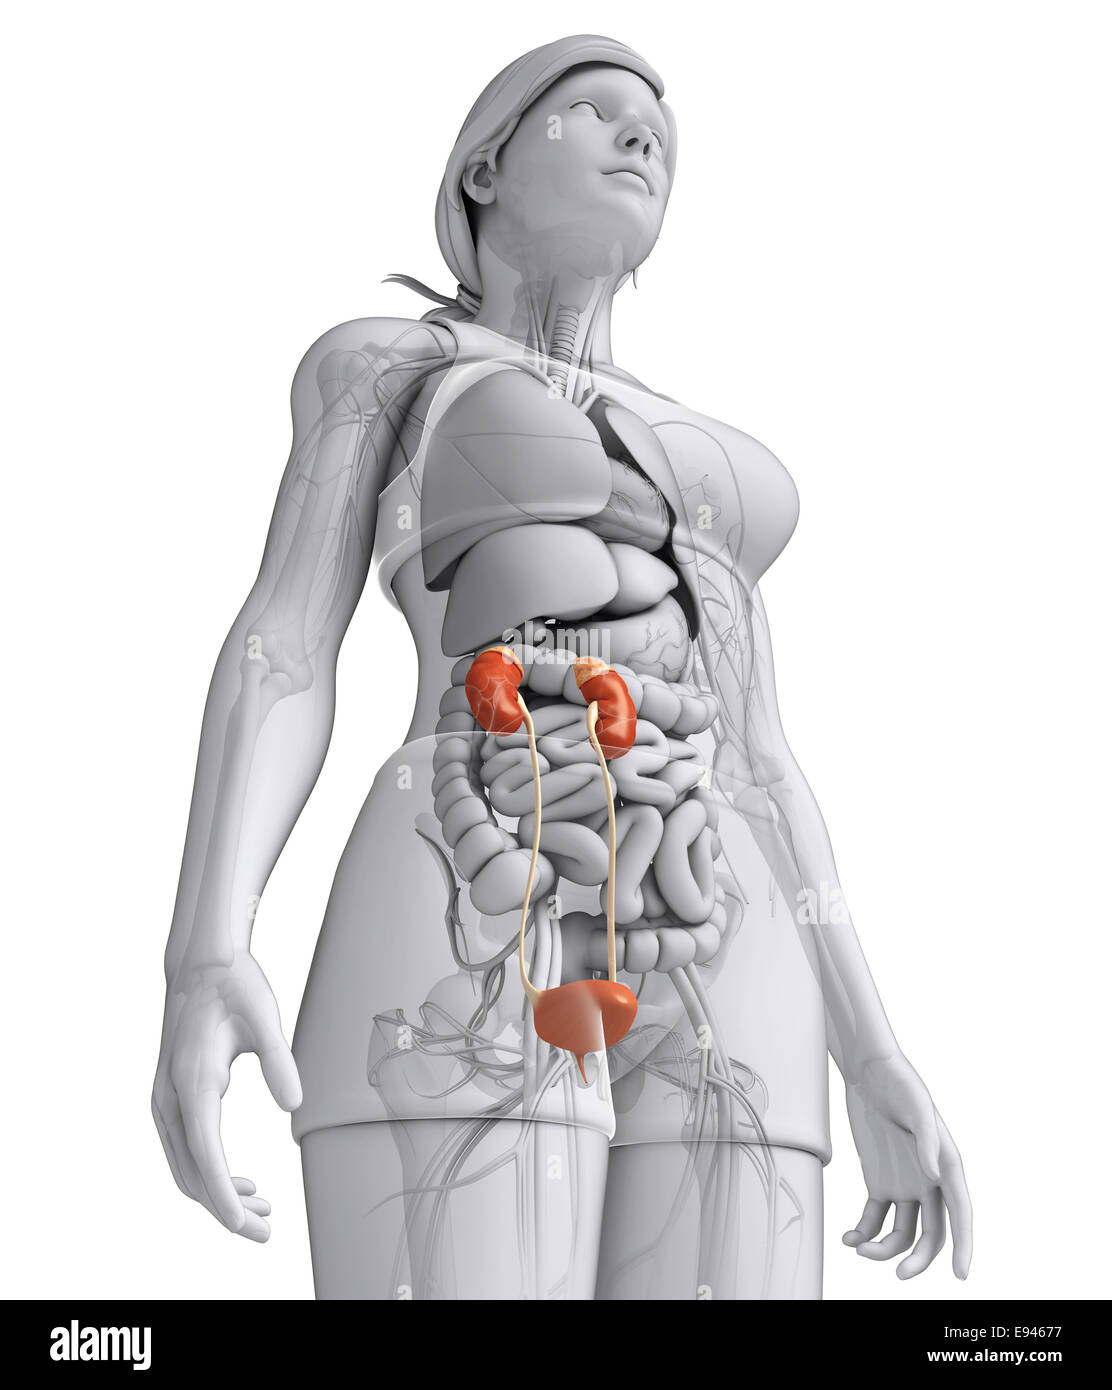 Female Urinary System Stock Photos Female Urinary System Stock